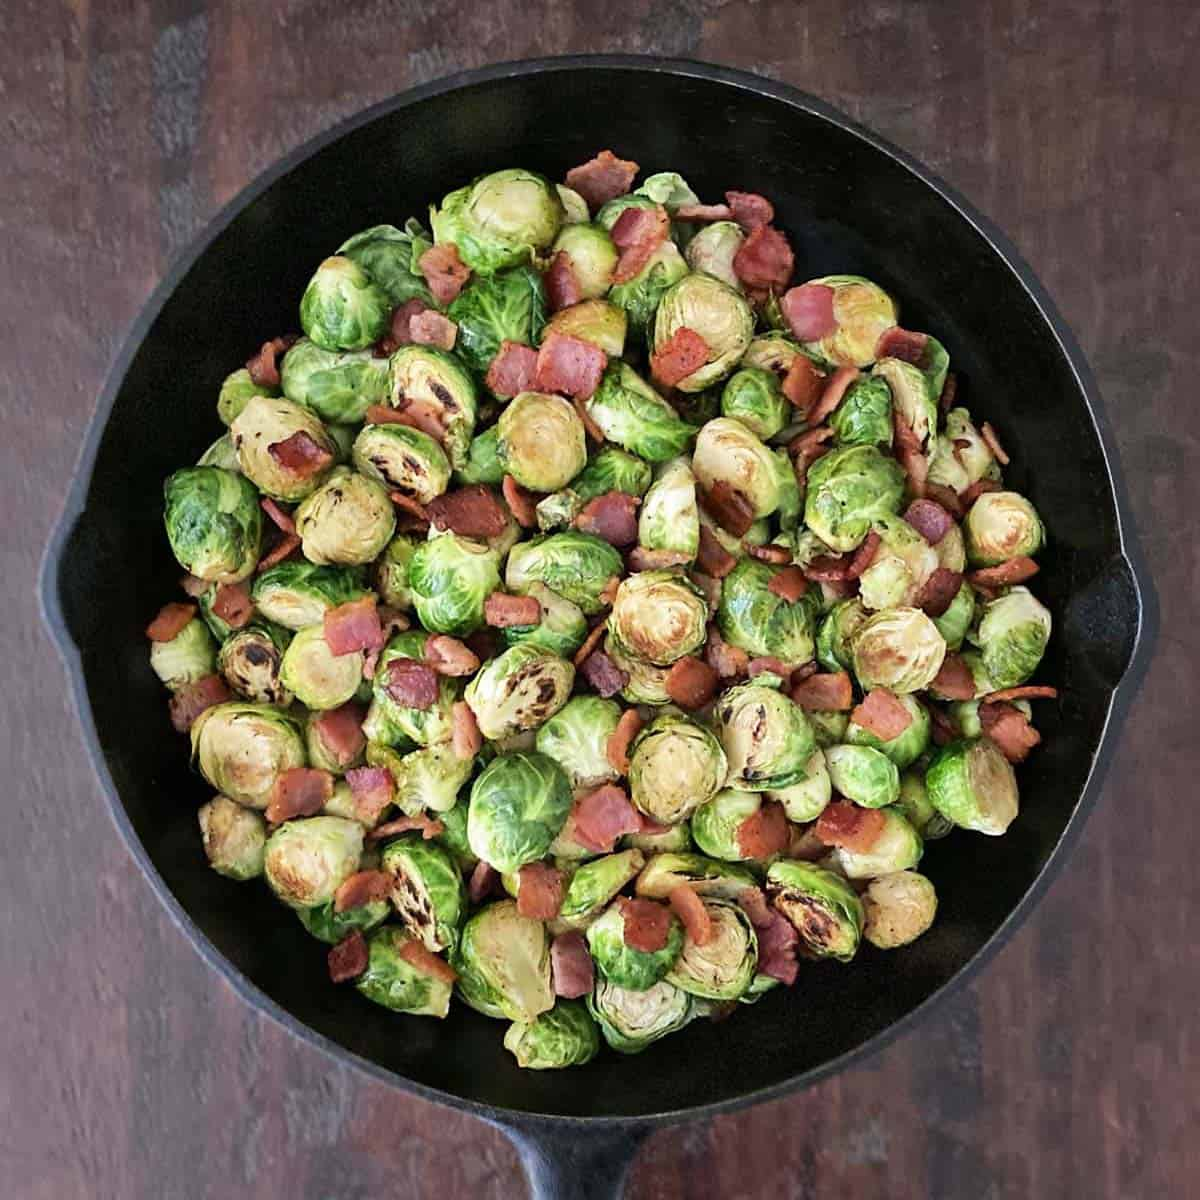 A cast iron skillet filled with fully cooked halved brussels sprouts and bacon on a wood background